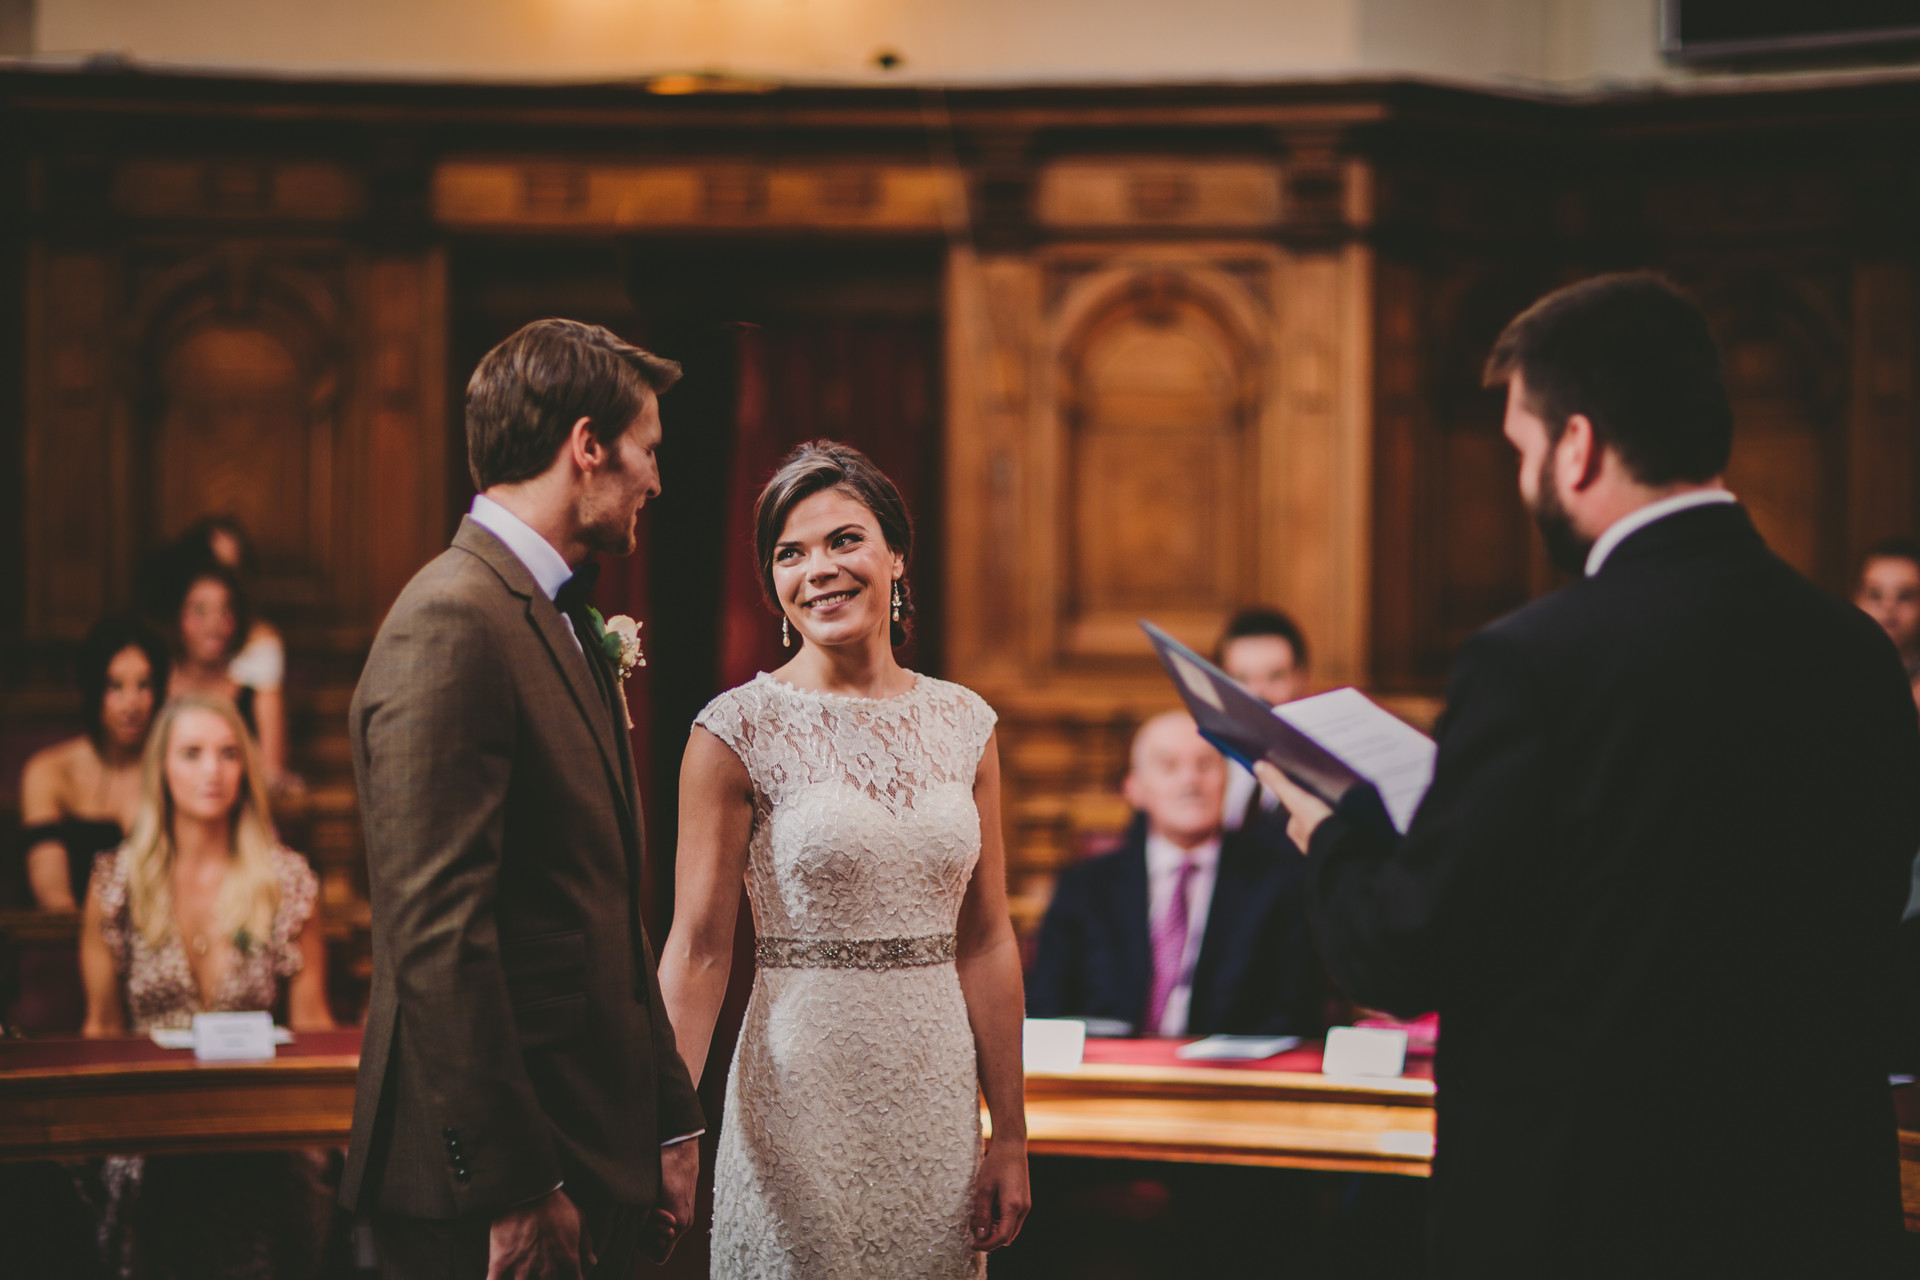 CityHallWedding (5 of 13).jpg